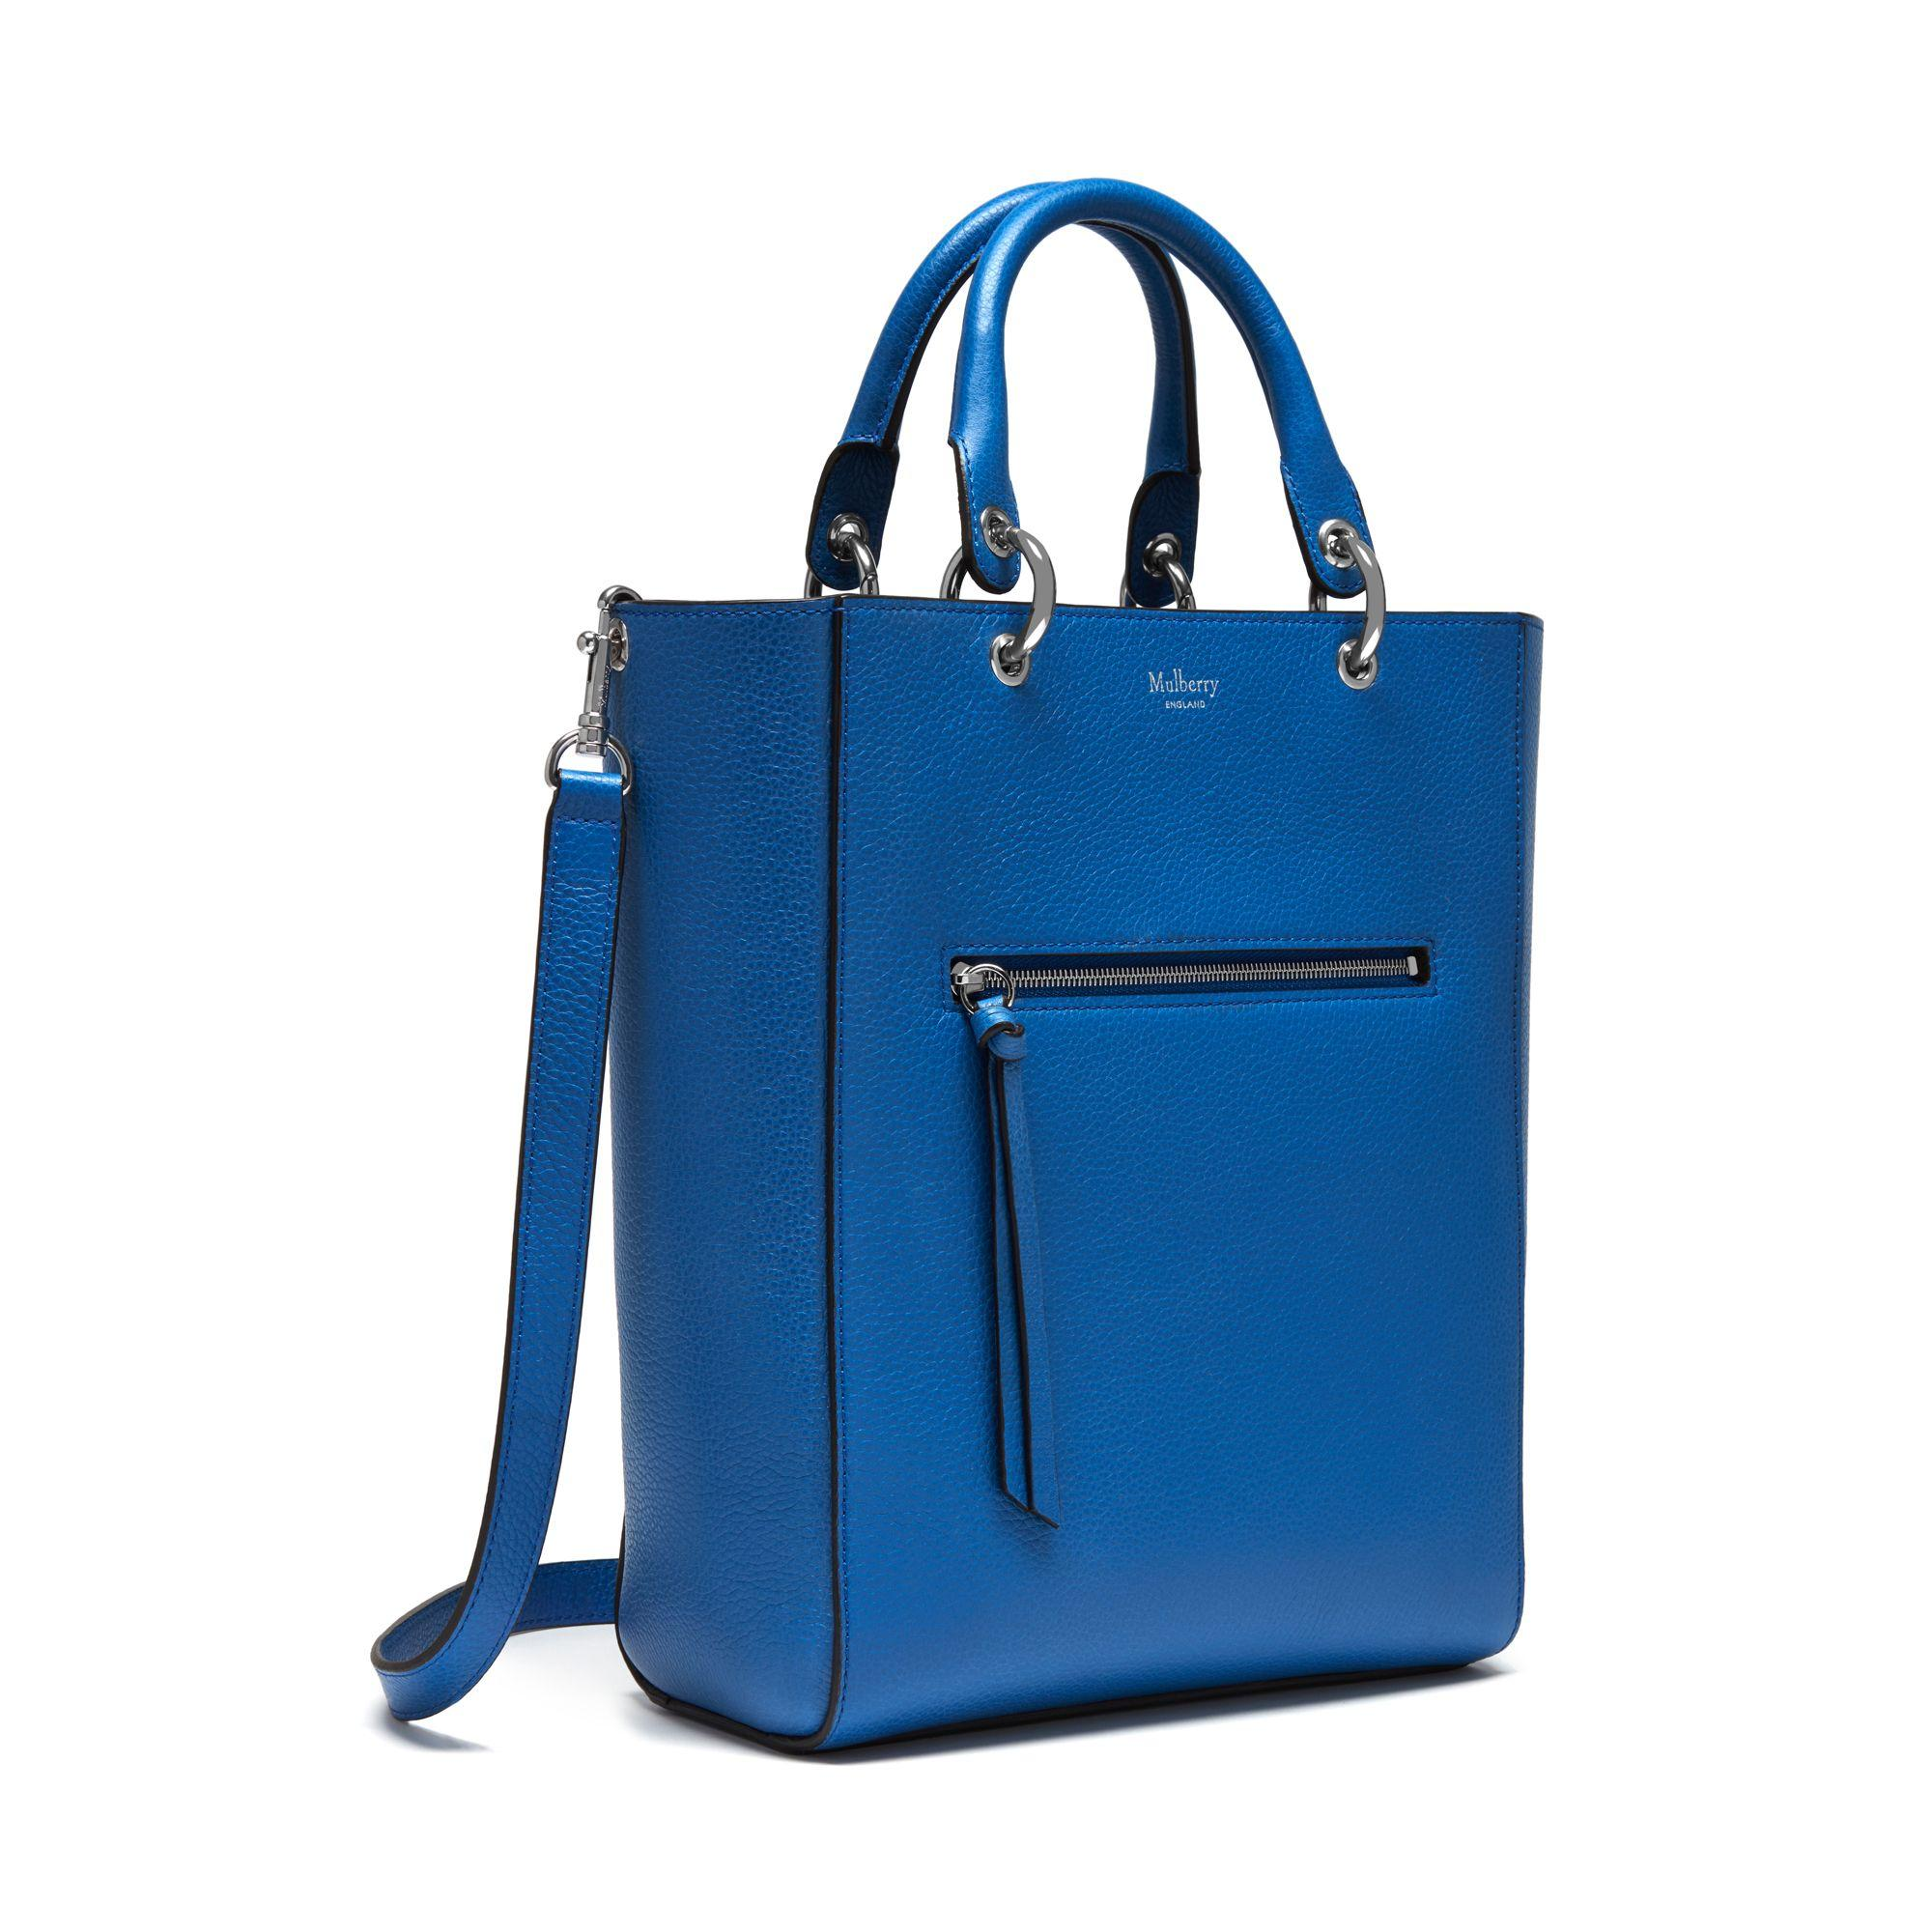 1b6737177595 ... sale lyst mulberry small maple leather tote in blue 70170 c1441